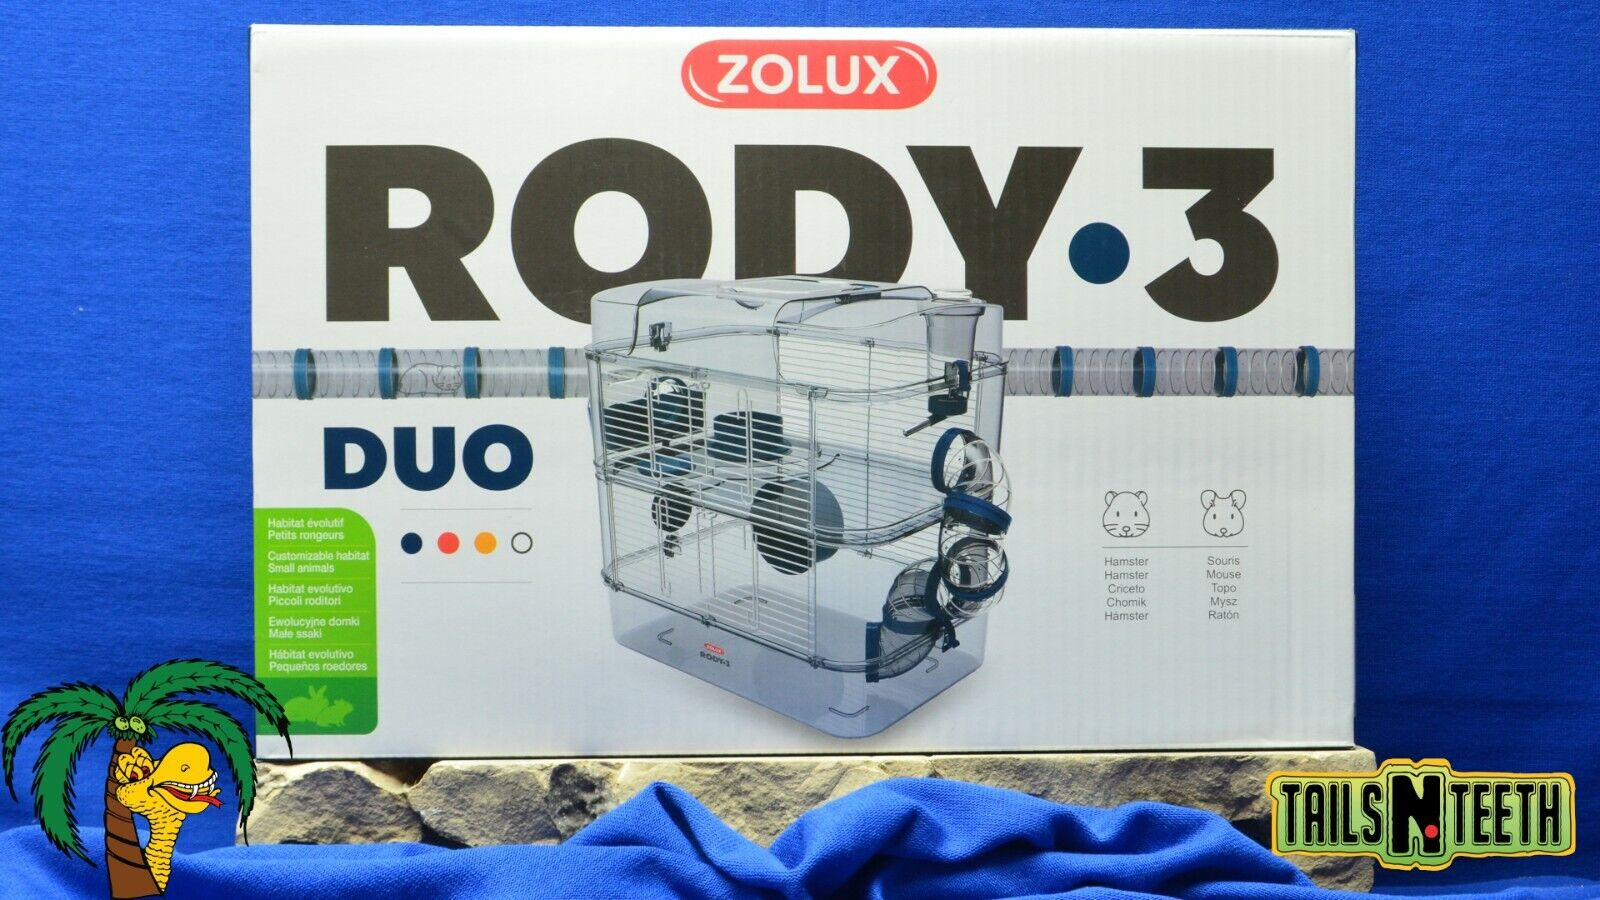 Zolux RODY-3 DUO Cage For Hamsters Gerbils Mice - Blue - InterConnecting Cages - CA$56.99